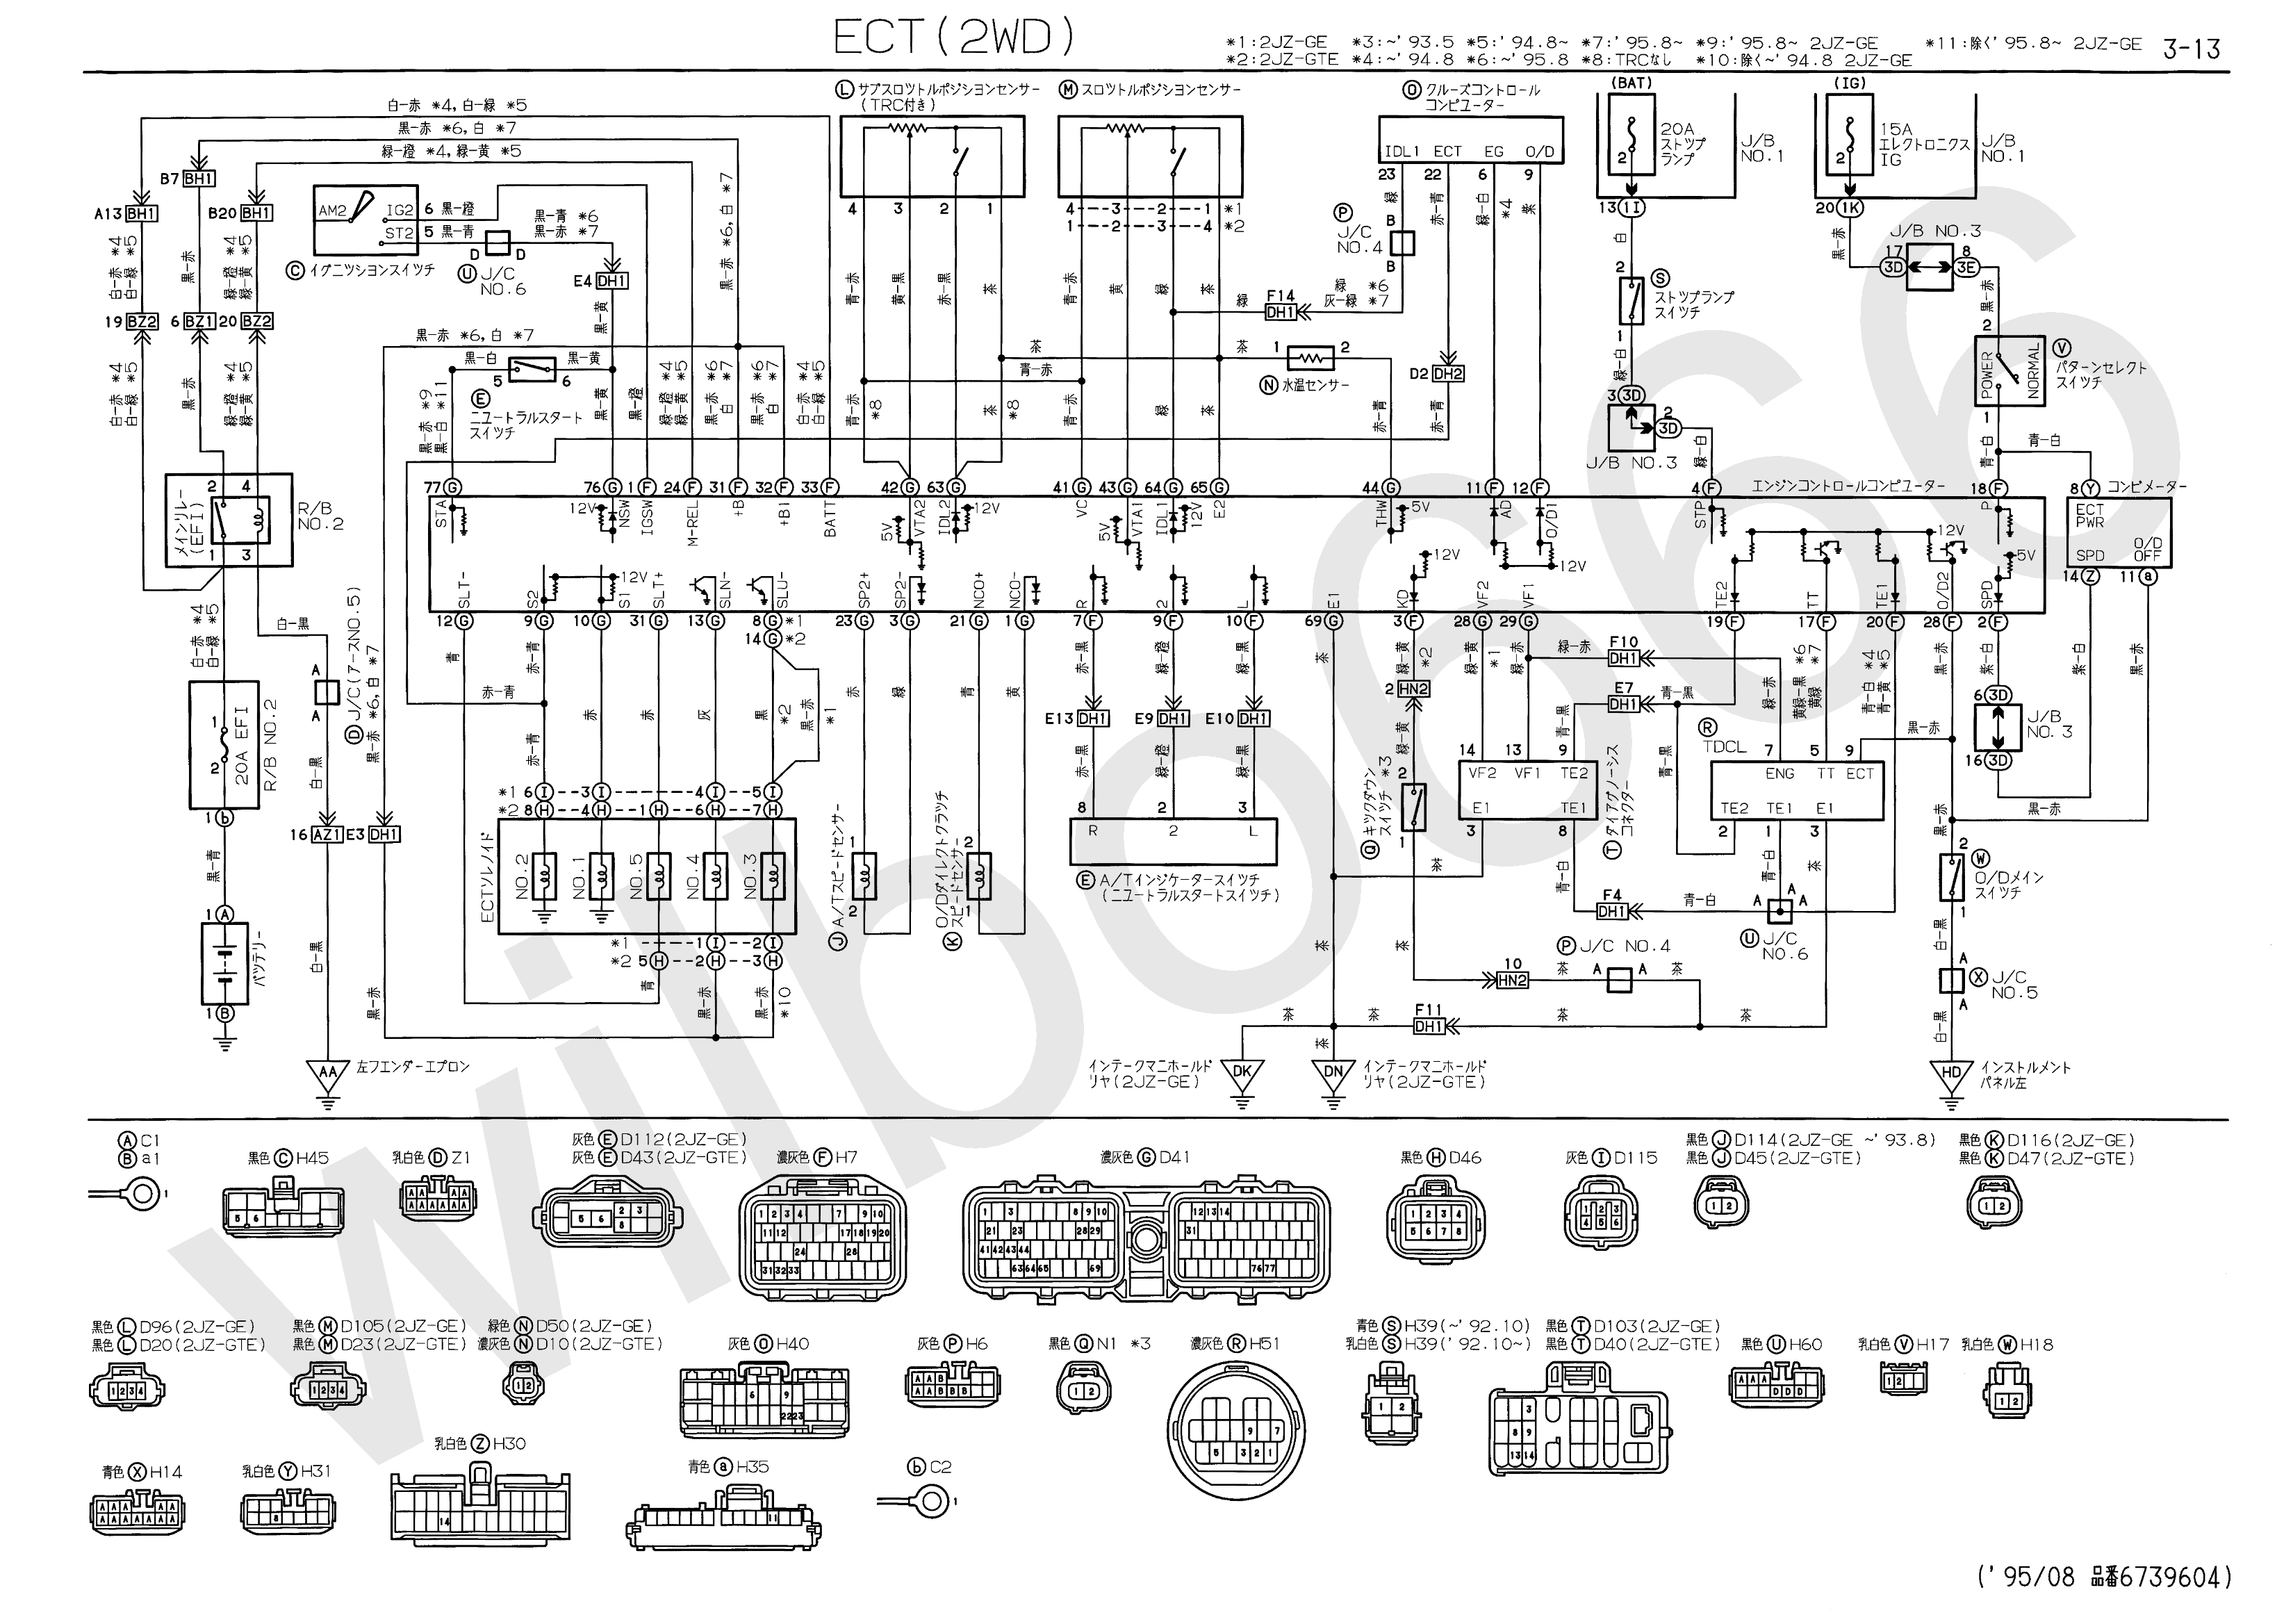 2JZ GTE 20JZS147 20Aristo 20Engine 20Wiring on 2011 ford radio wiring diagram